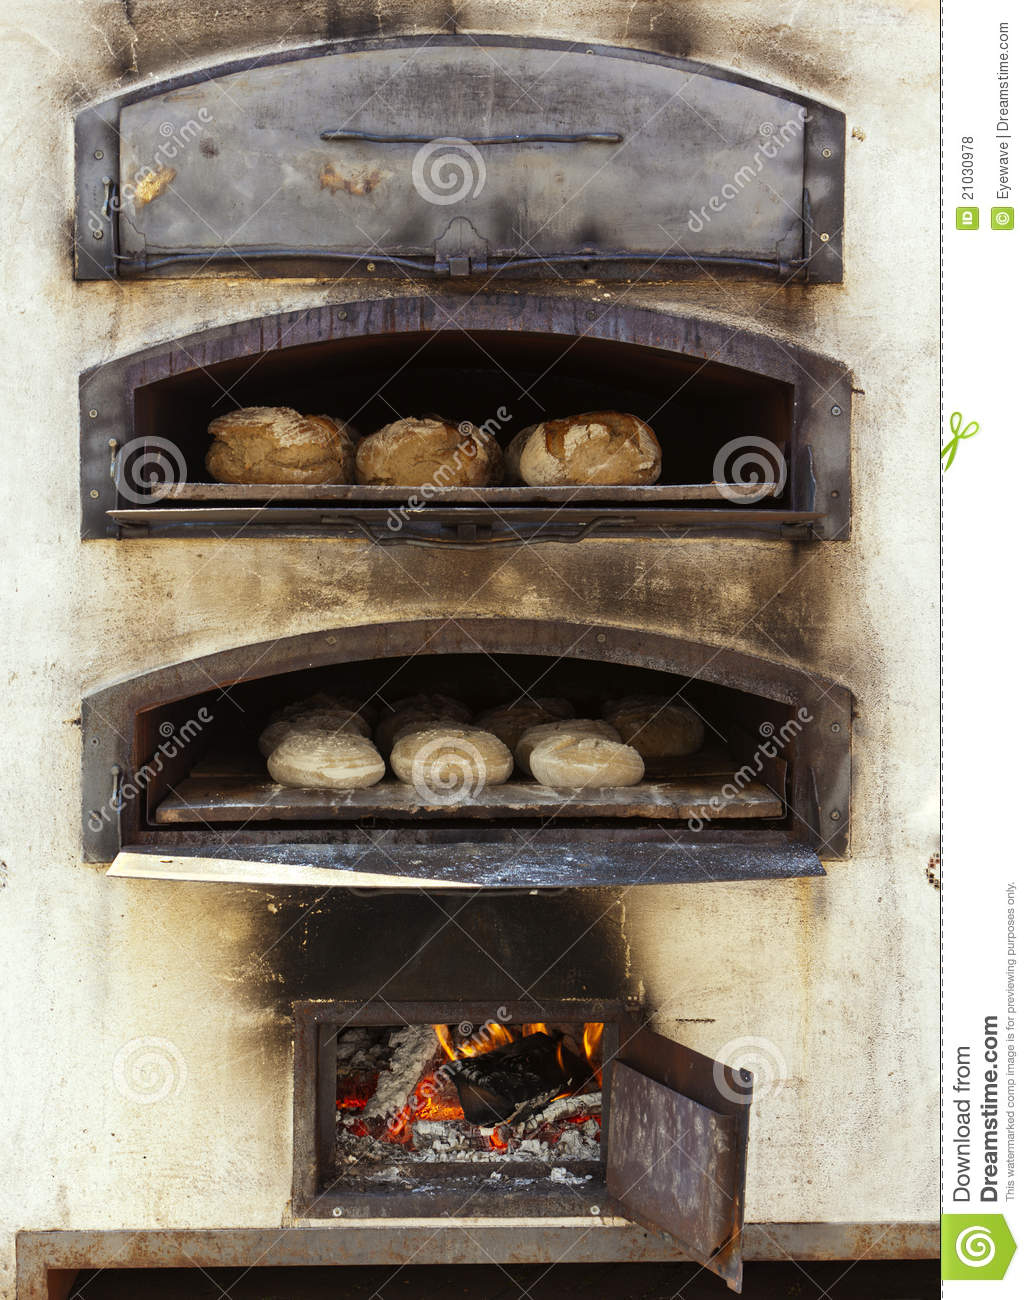 Baking Bread In Traditional Wood Oven Royalty Free Stock